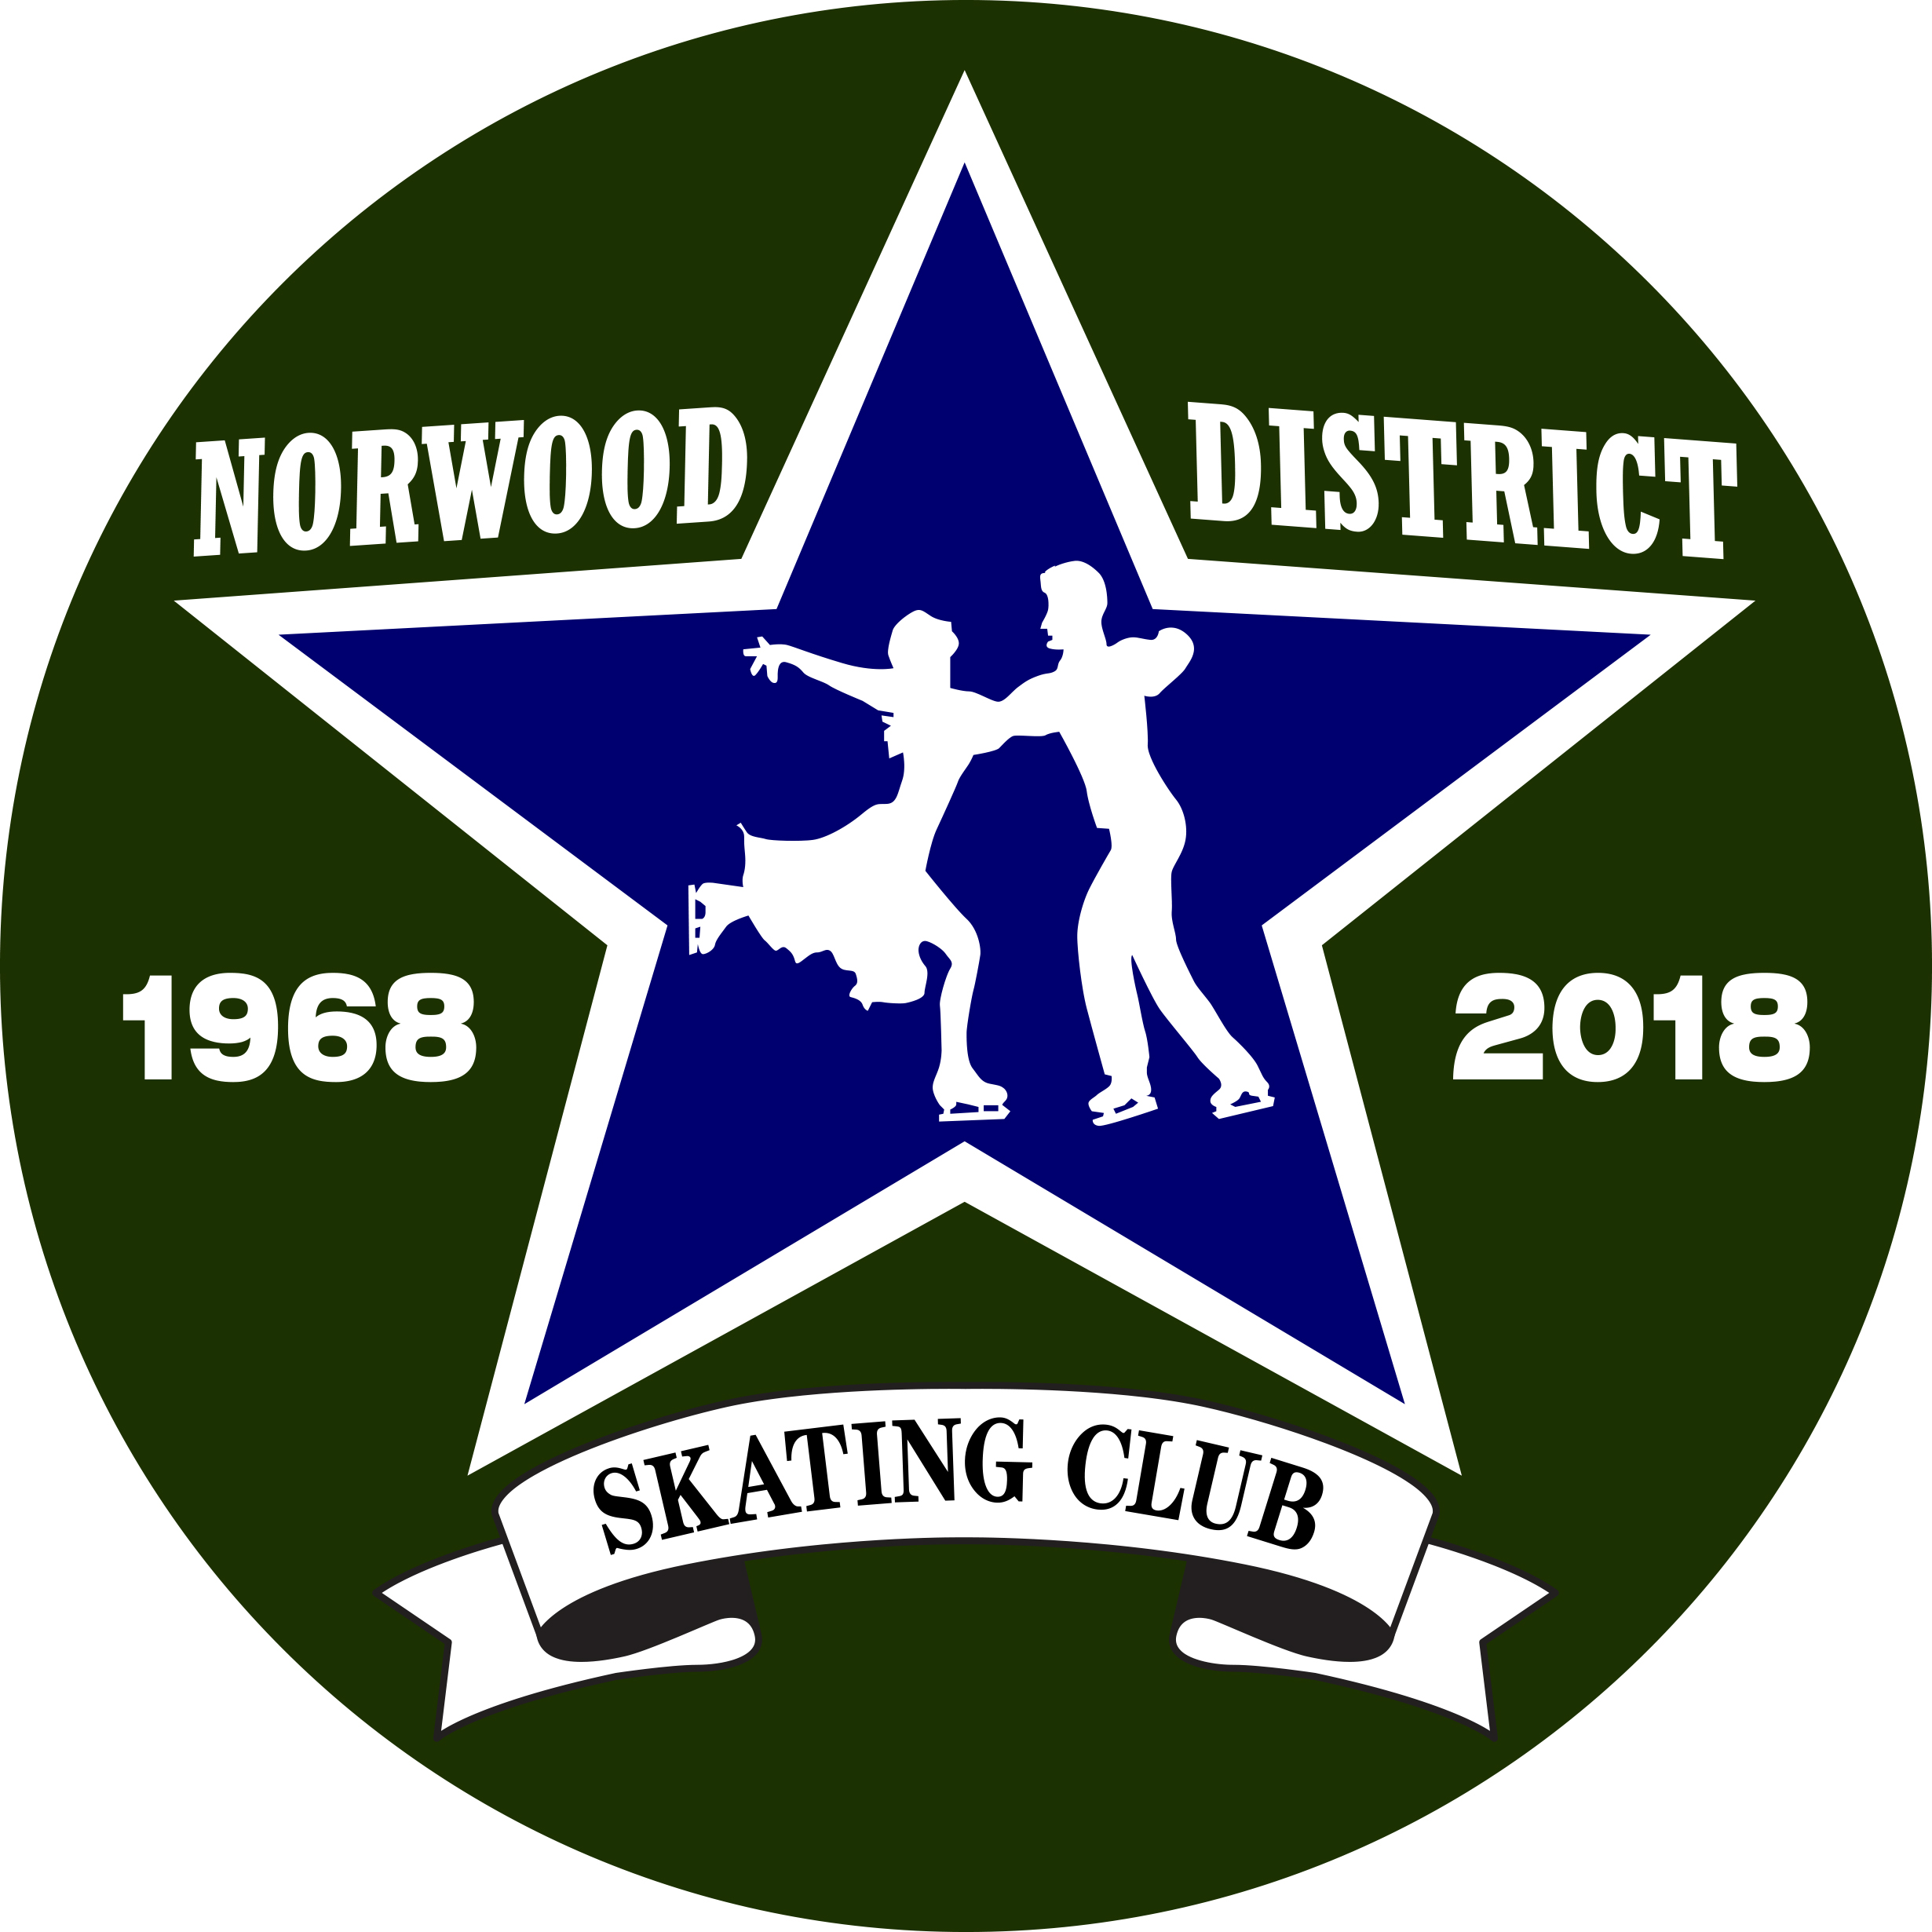 Norwood District Skating Club